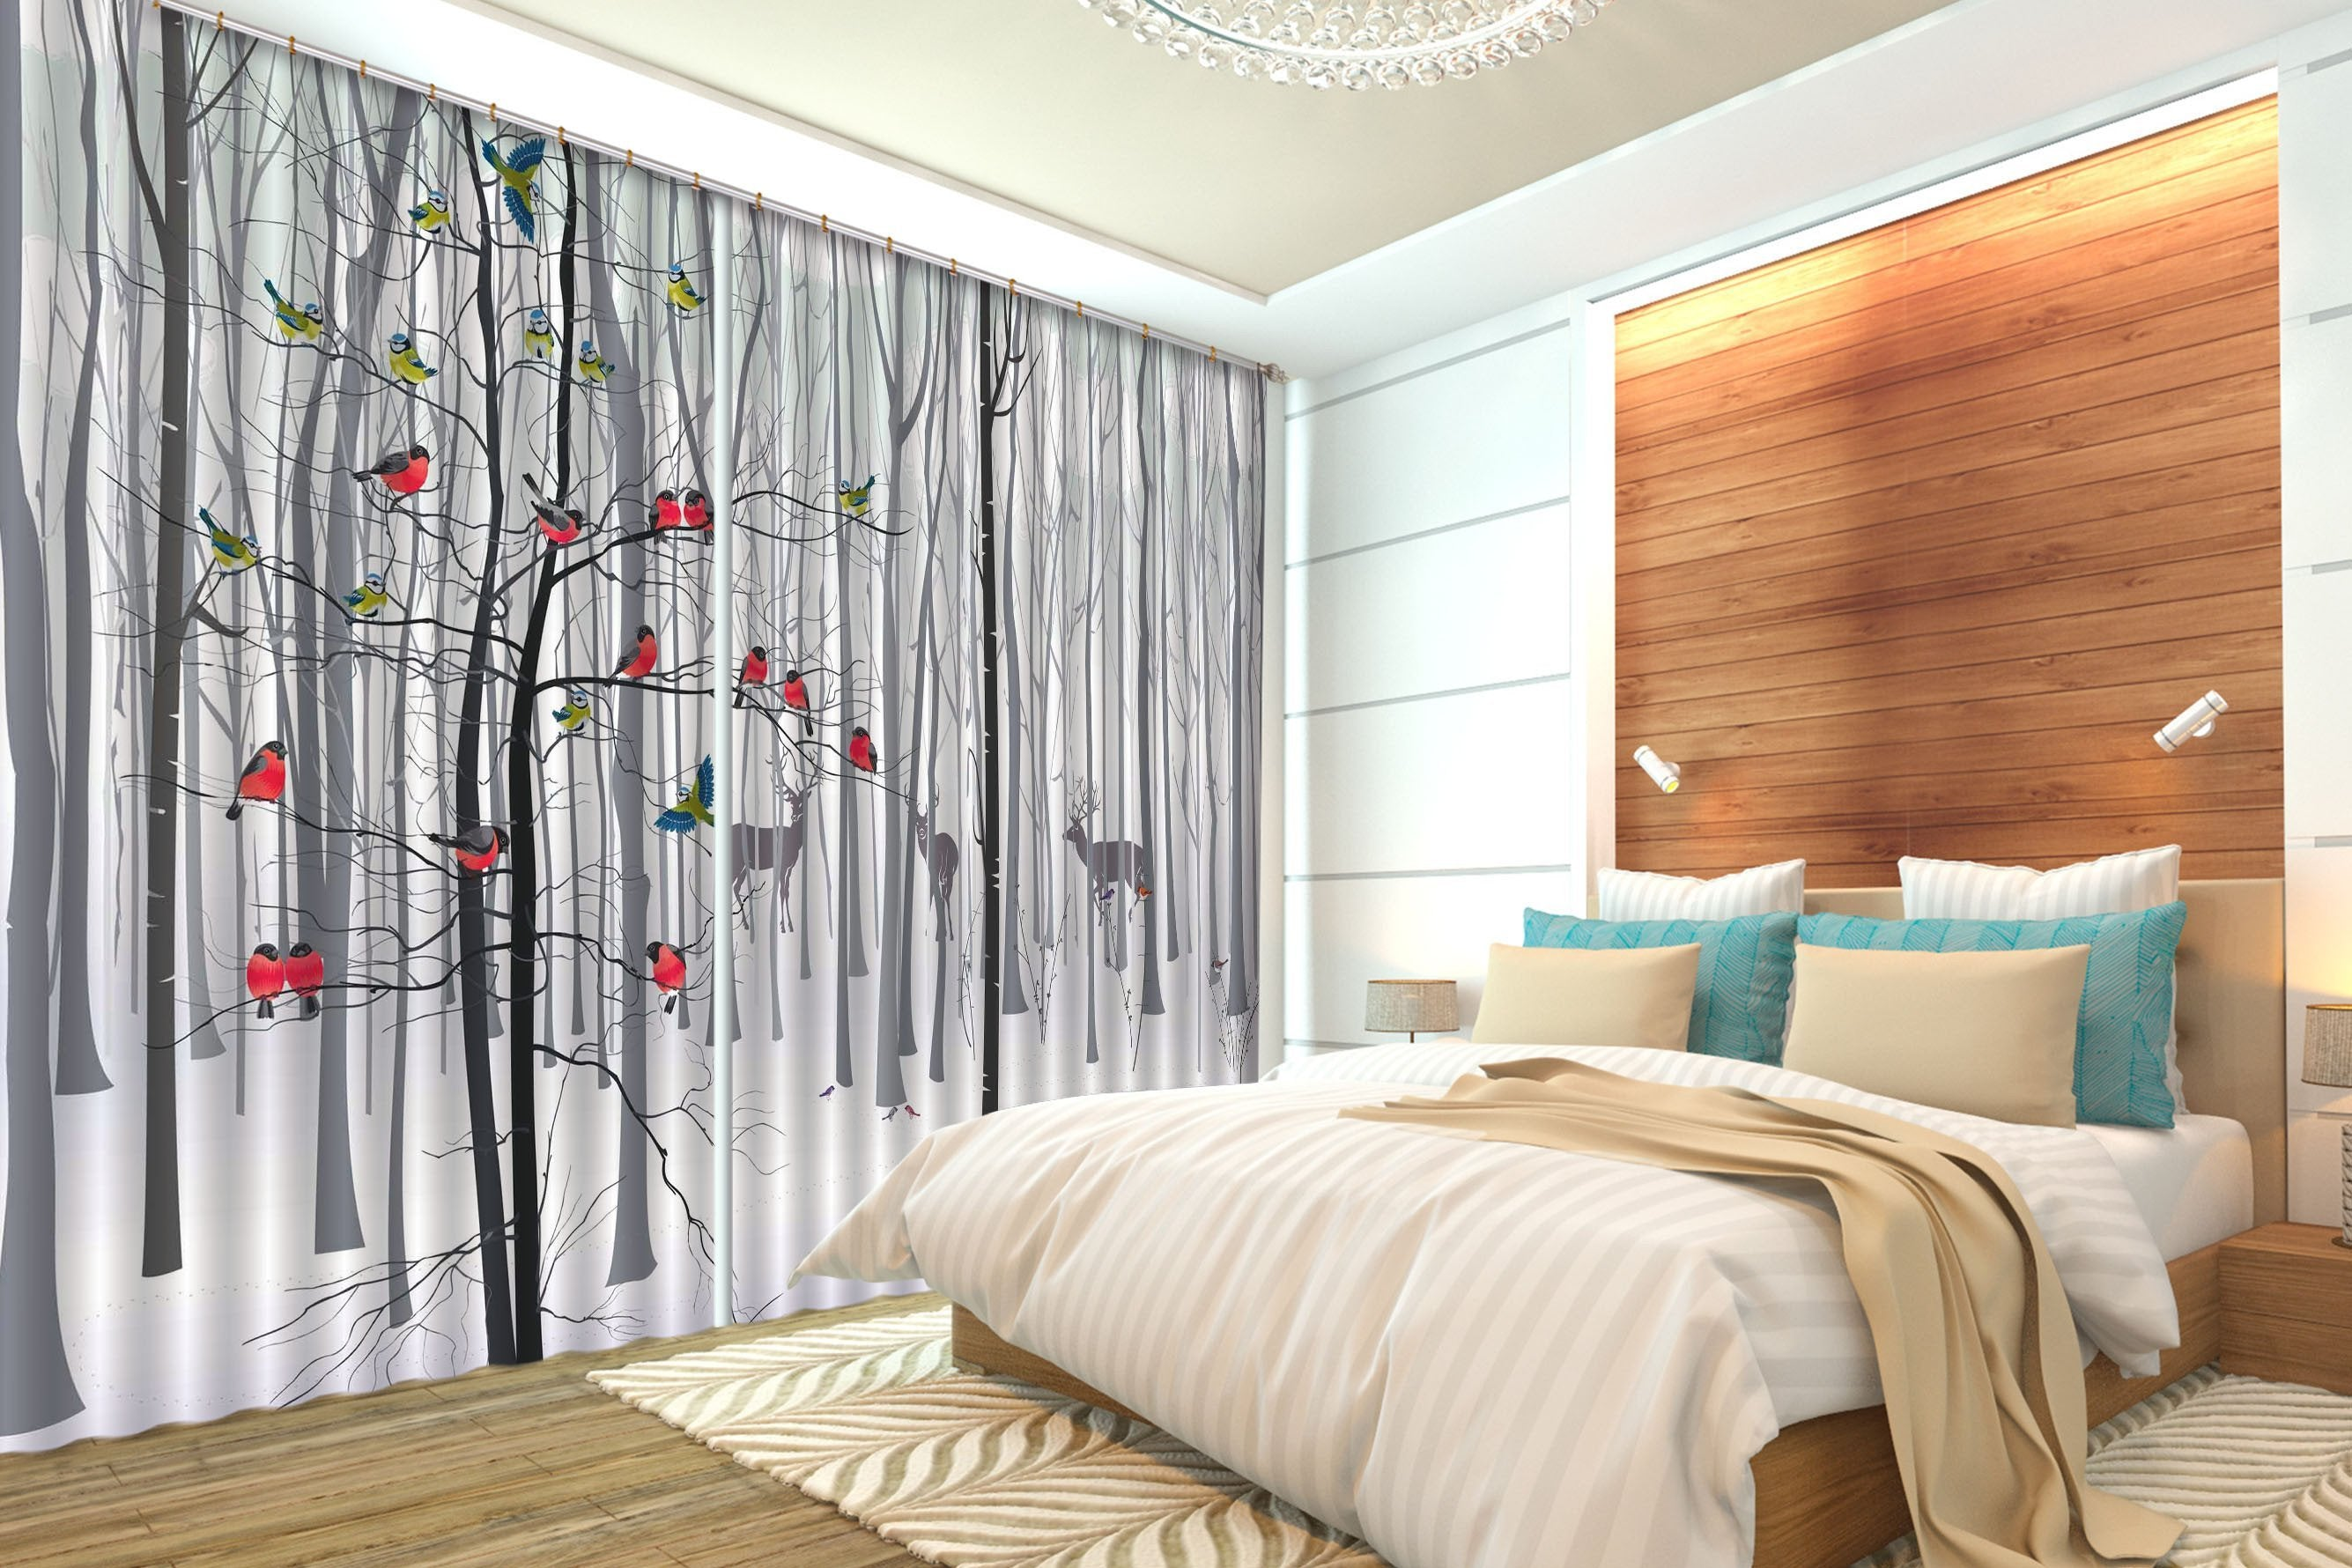 3D Bare Trees Animals 501 Curtains Drapes Wallpaper AJ Wallpaper